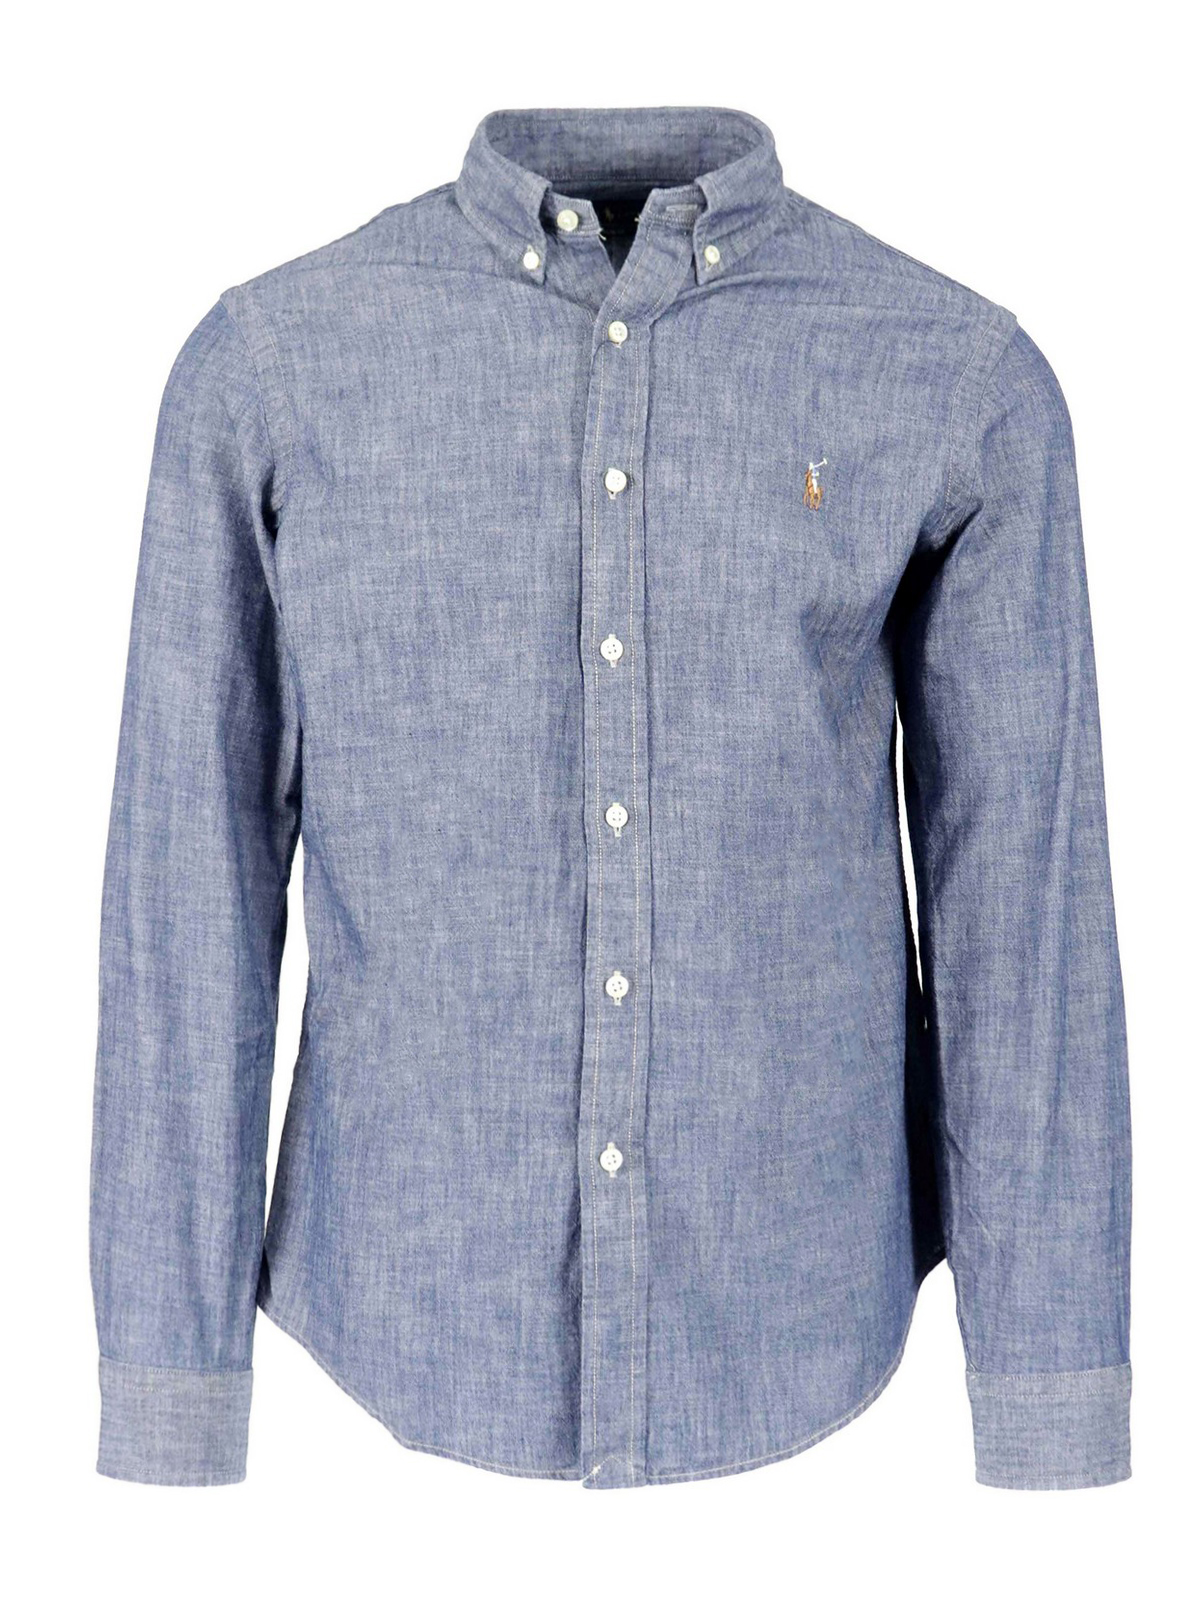 Polo Ralph Lauren DENIM EFFECT COTTON SHIRT